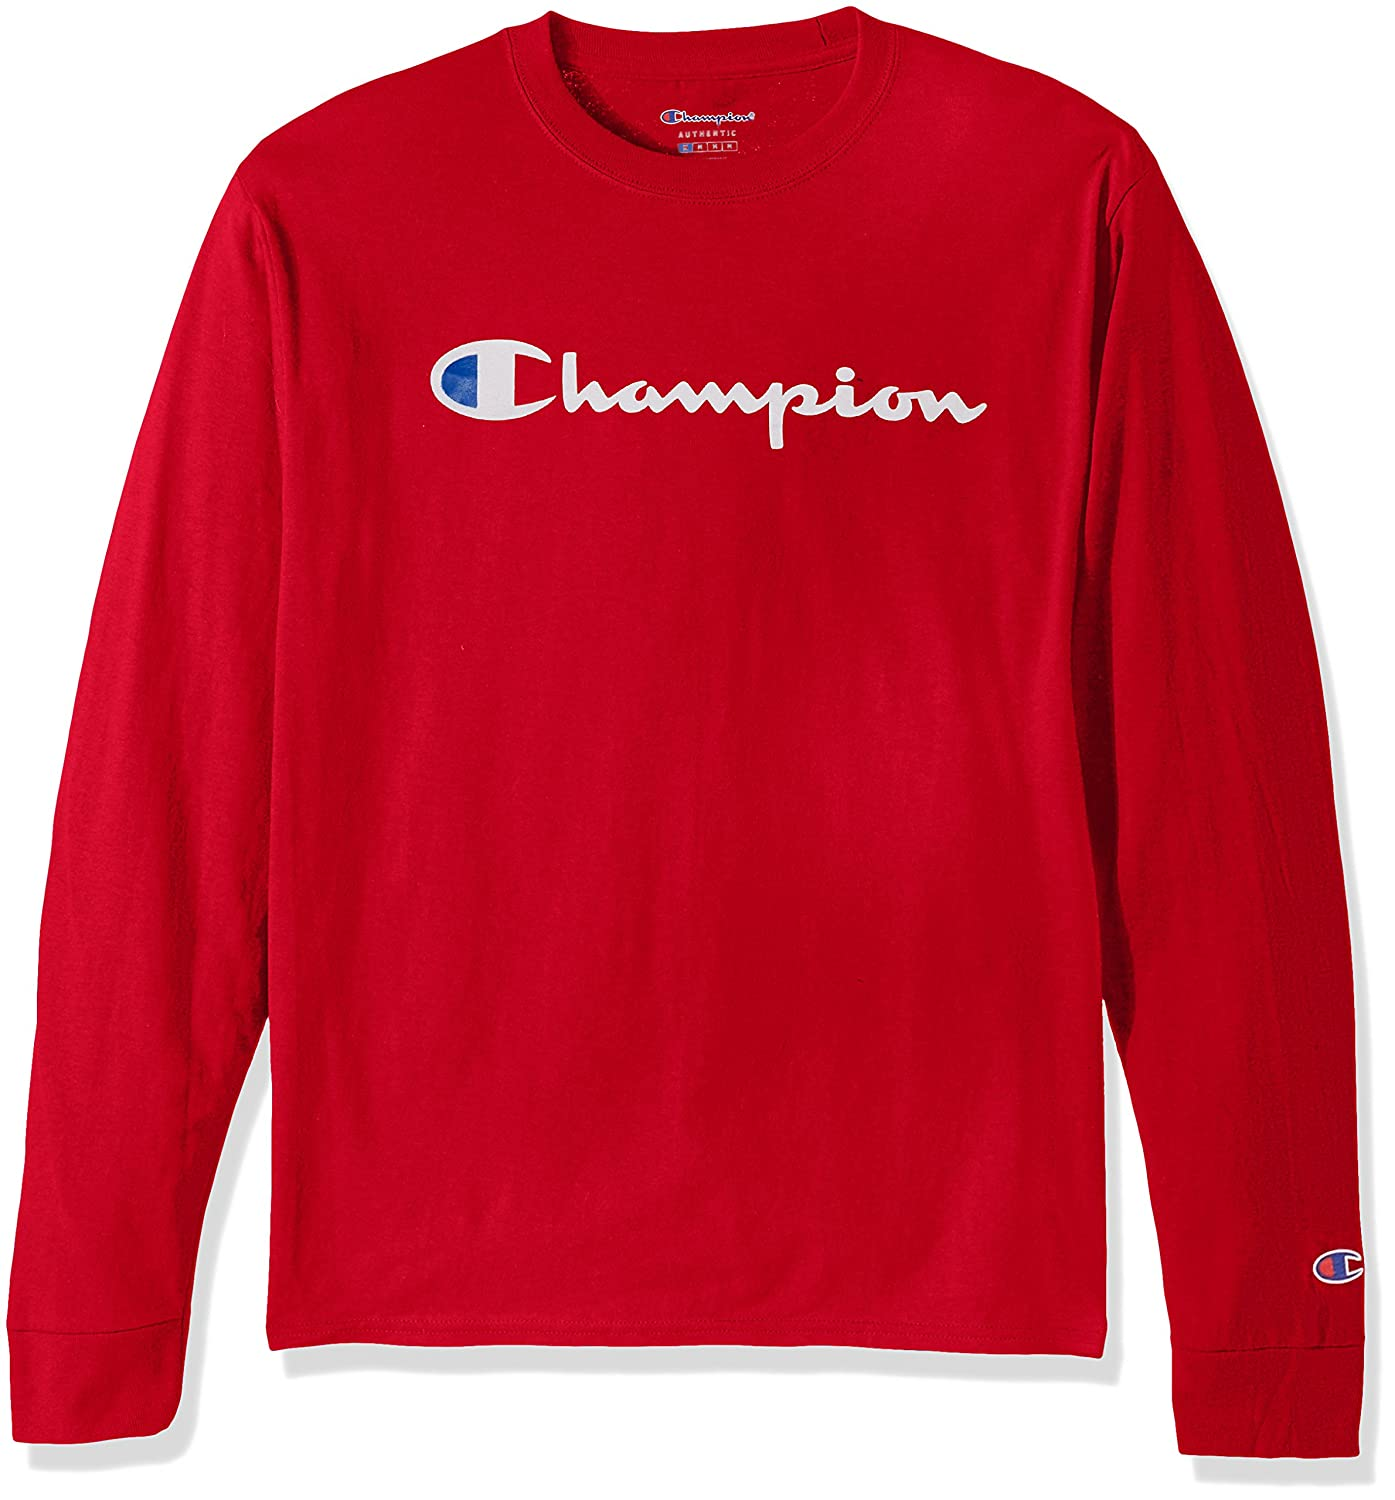 a66af4a9f Amazon.com: Champion LIFE Men's Cotton Long Sleeve Tee: Clothing